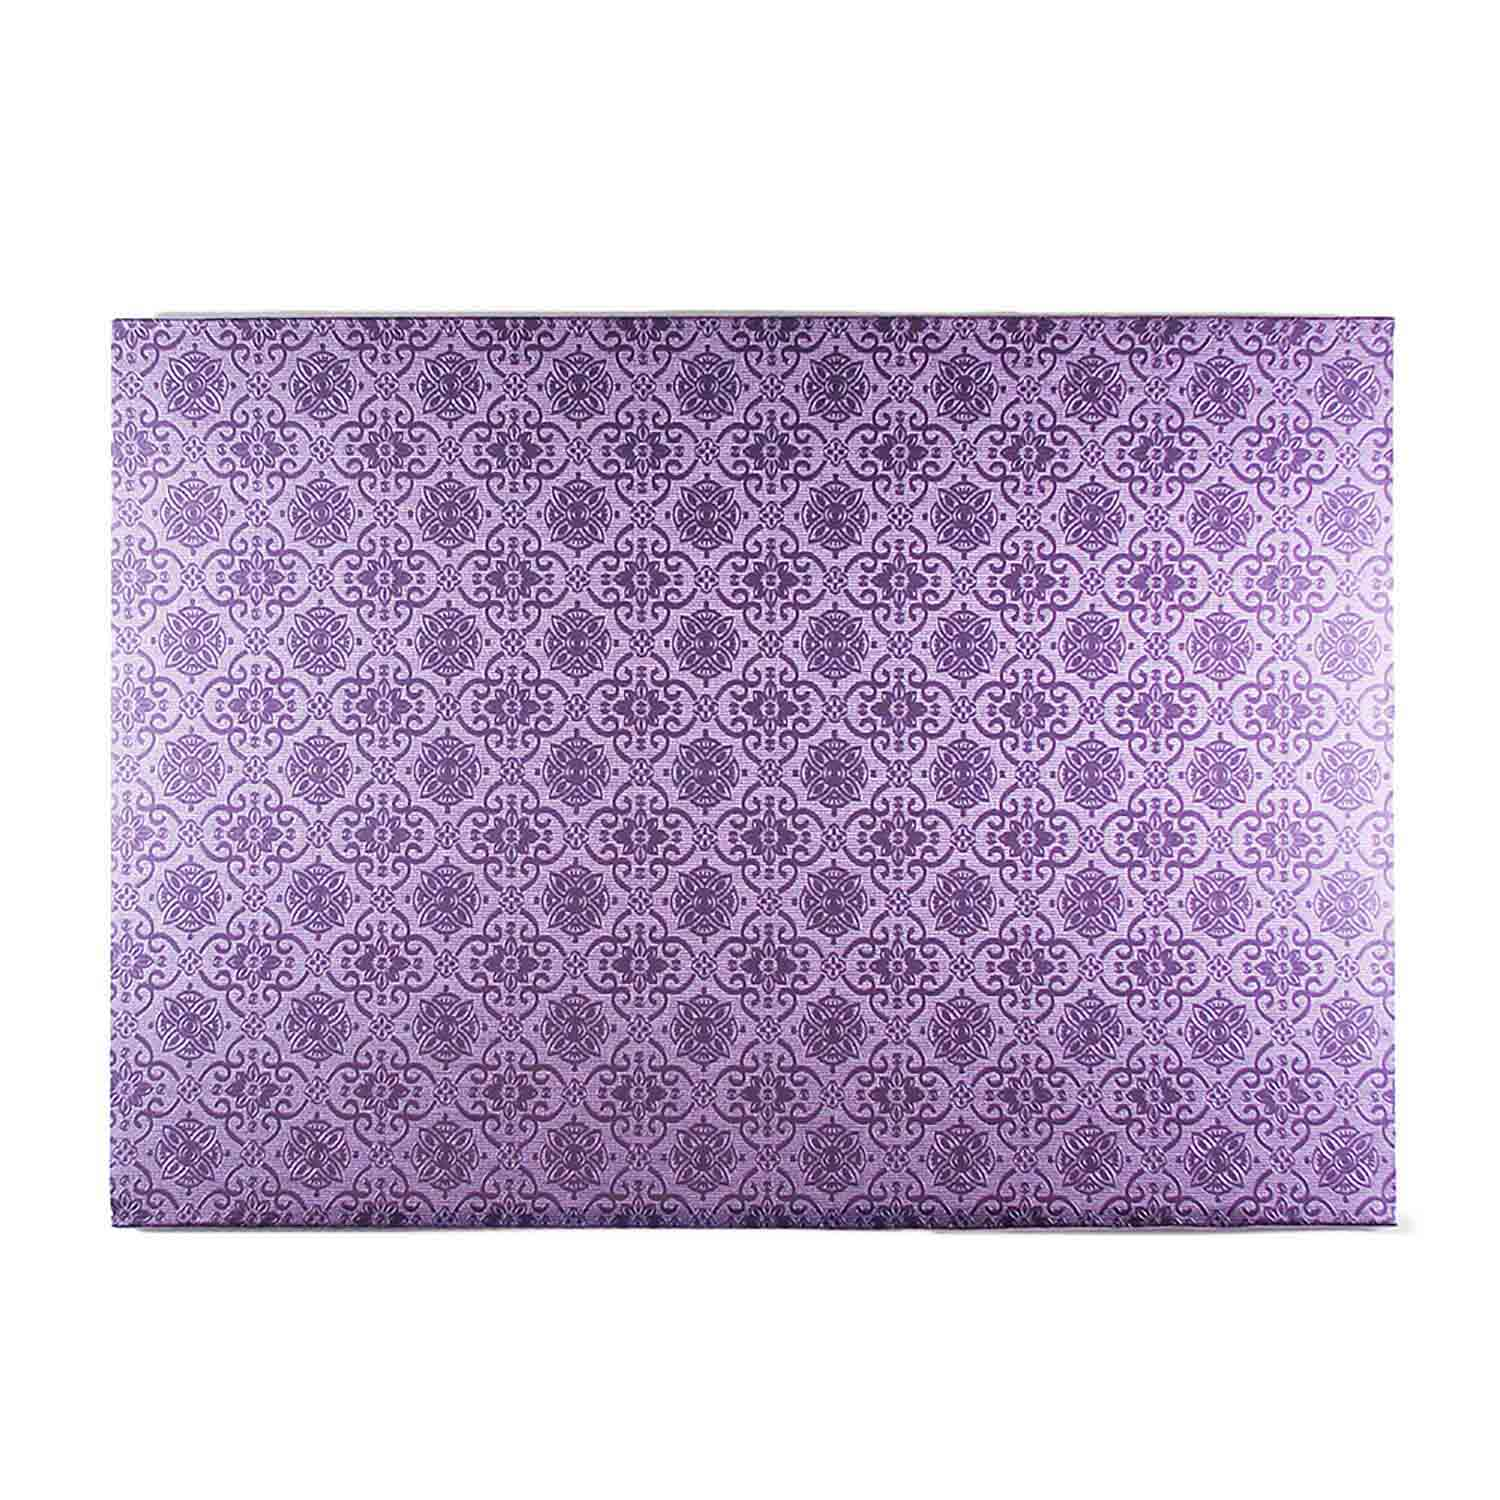 "10"" x 14"" Rectangle Lilac Foil Quarter Sheet Cake Drum"